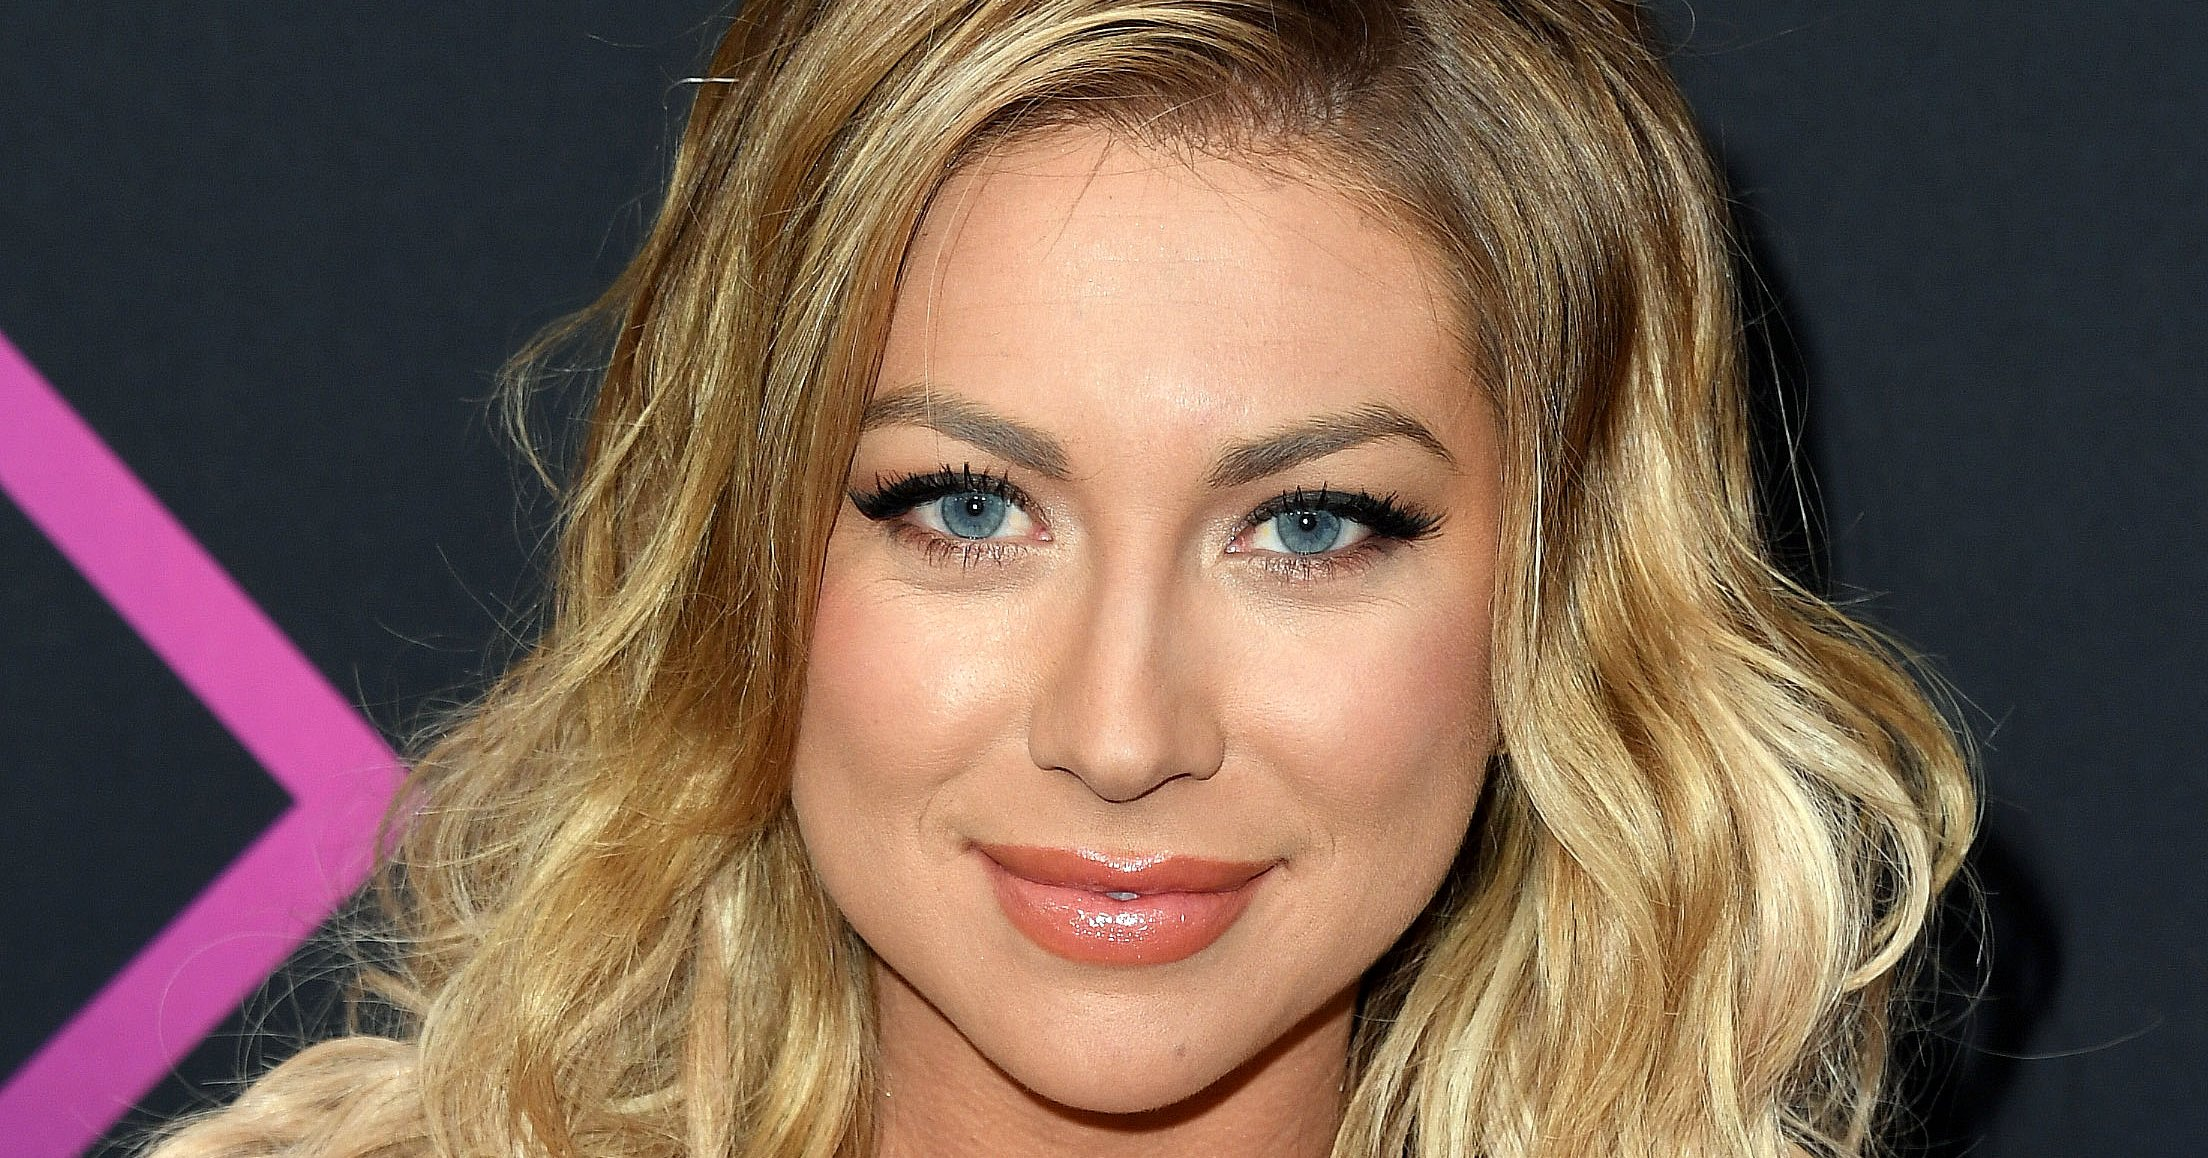 Vanderpump Rules' Stassi Schroeder Credits This as Her Hangover Cure-All